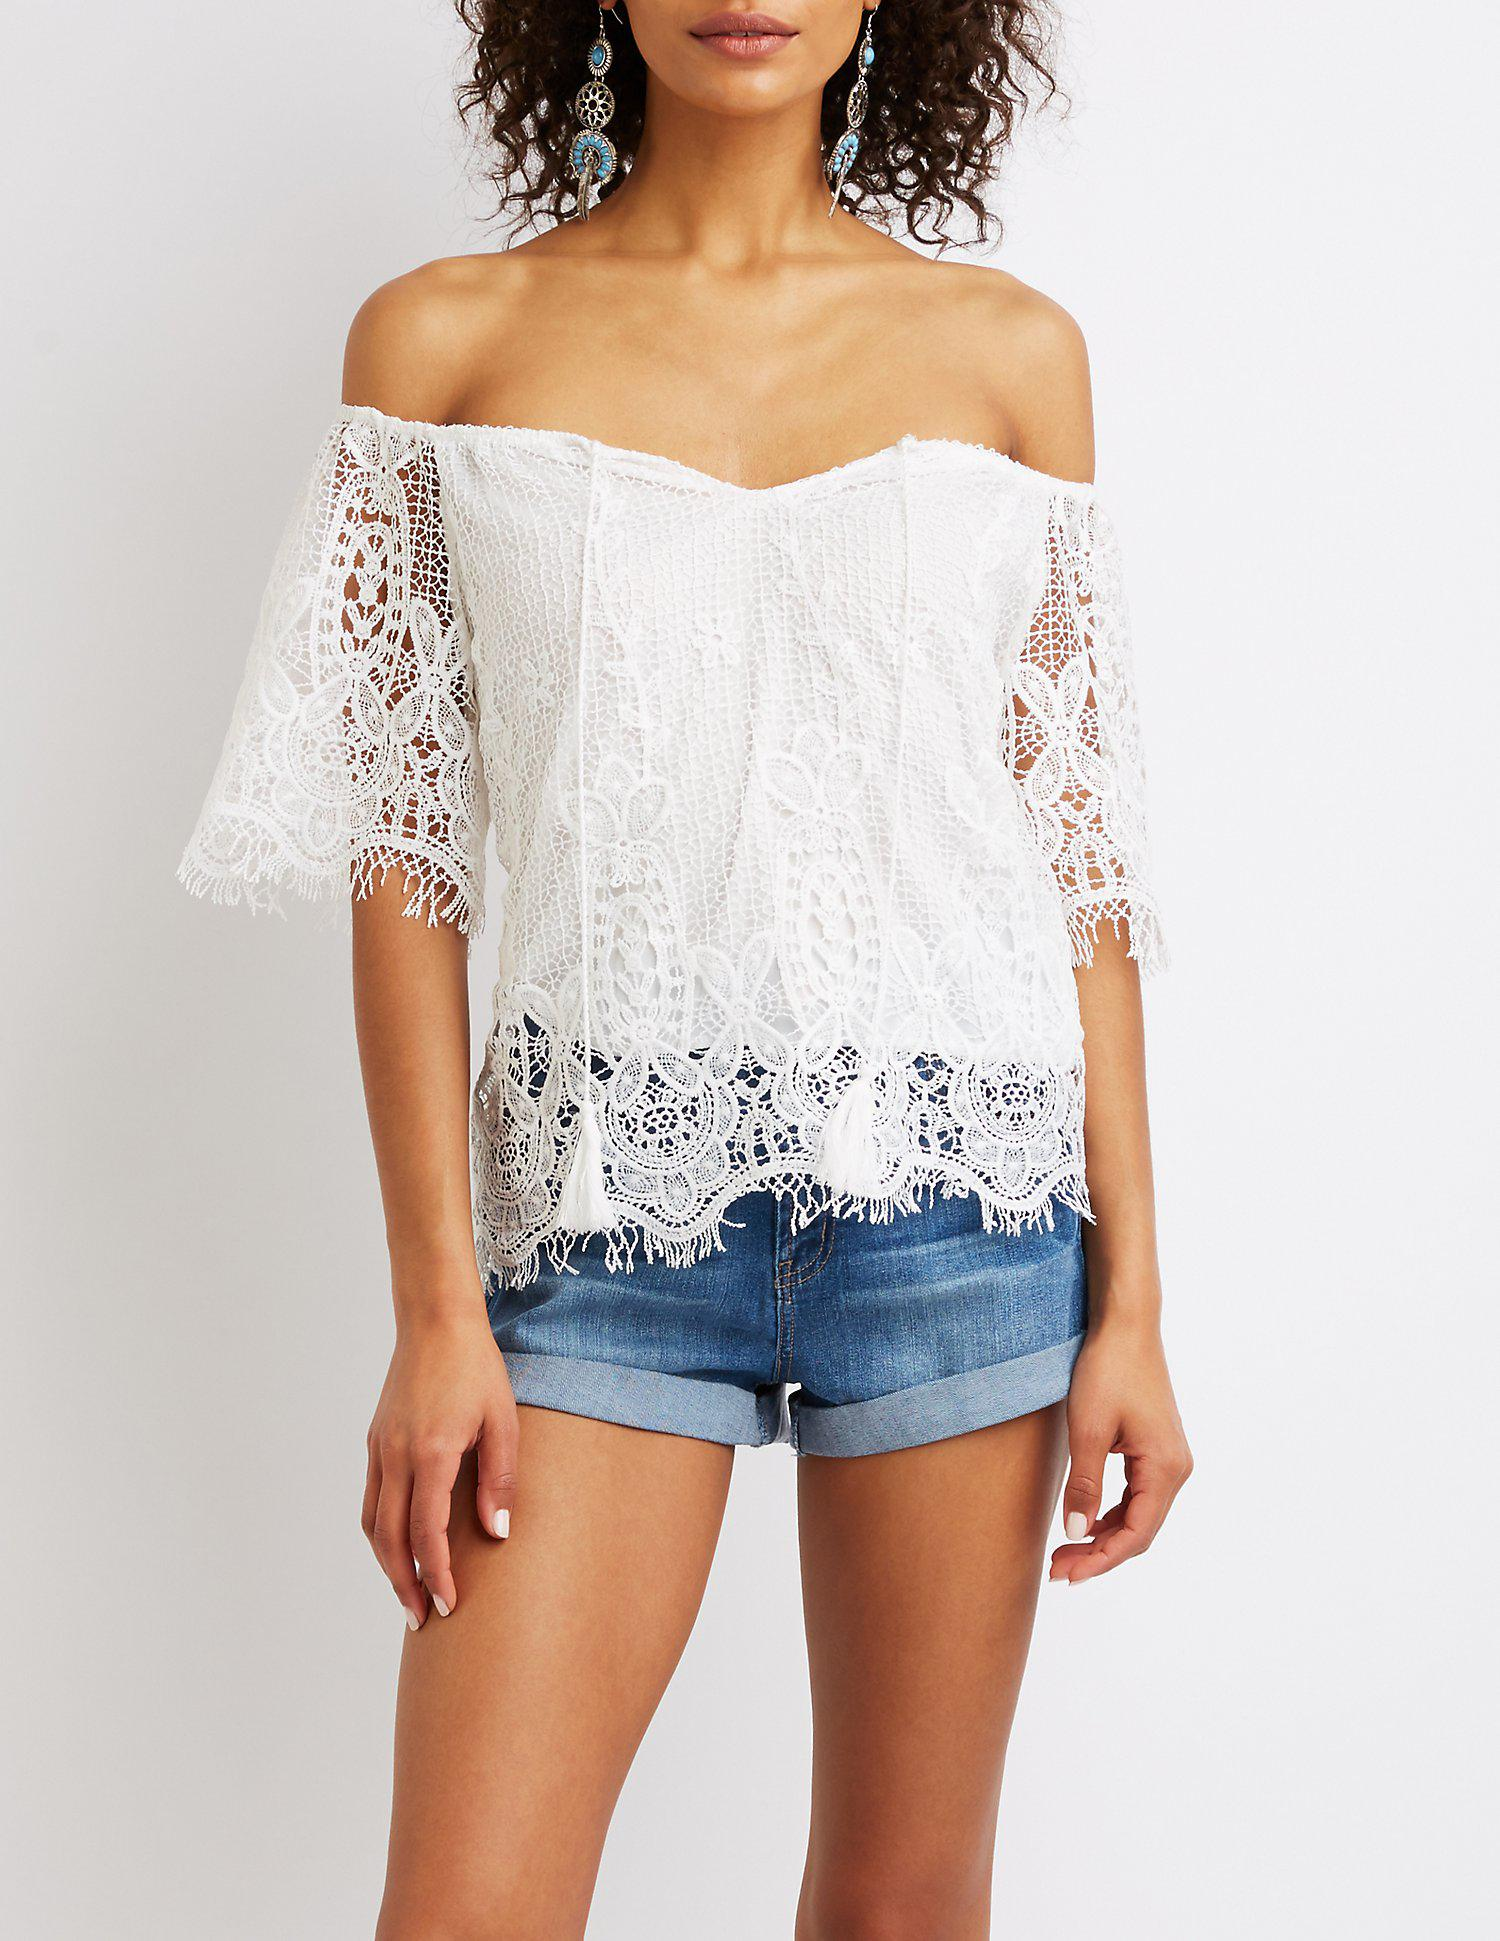 6c39509e847ff Lyst - Charlotte Russe Floral Lace Off-the-shoulder Top in White